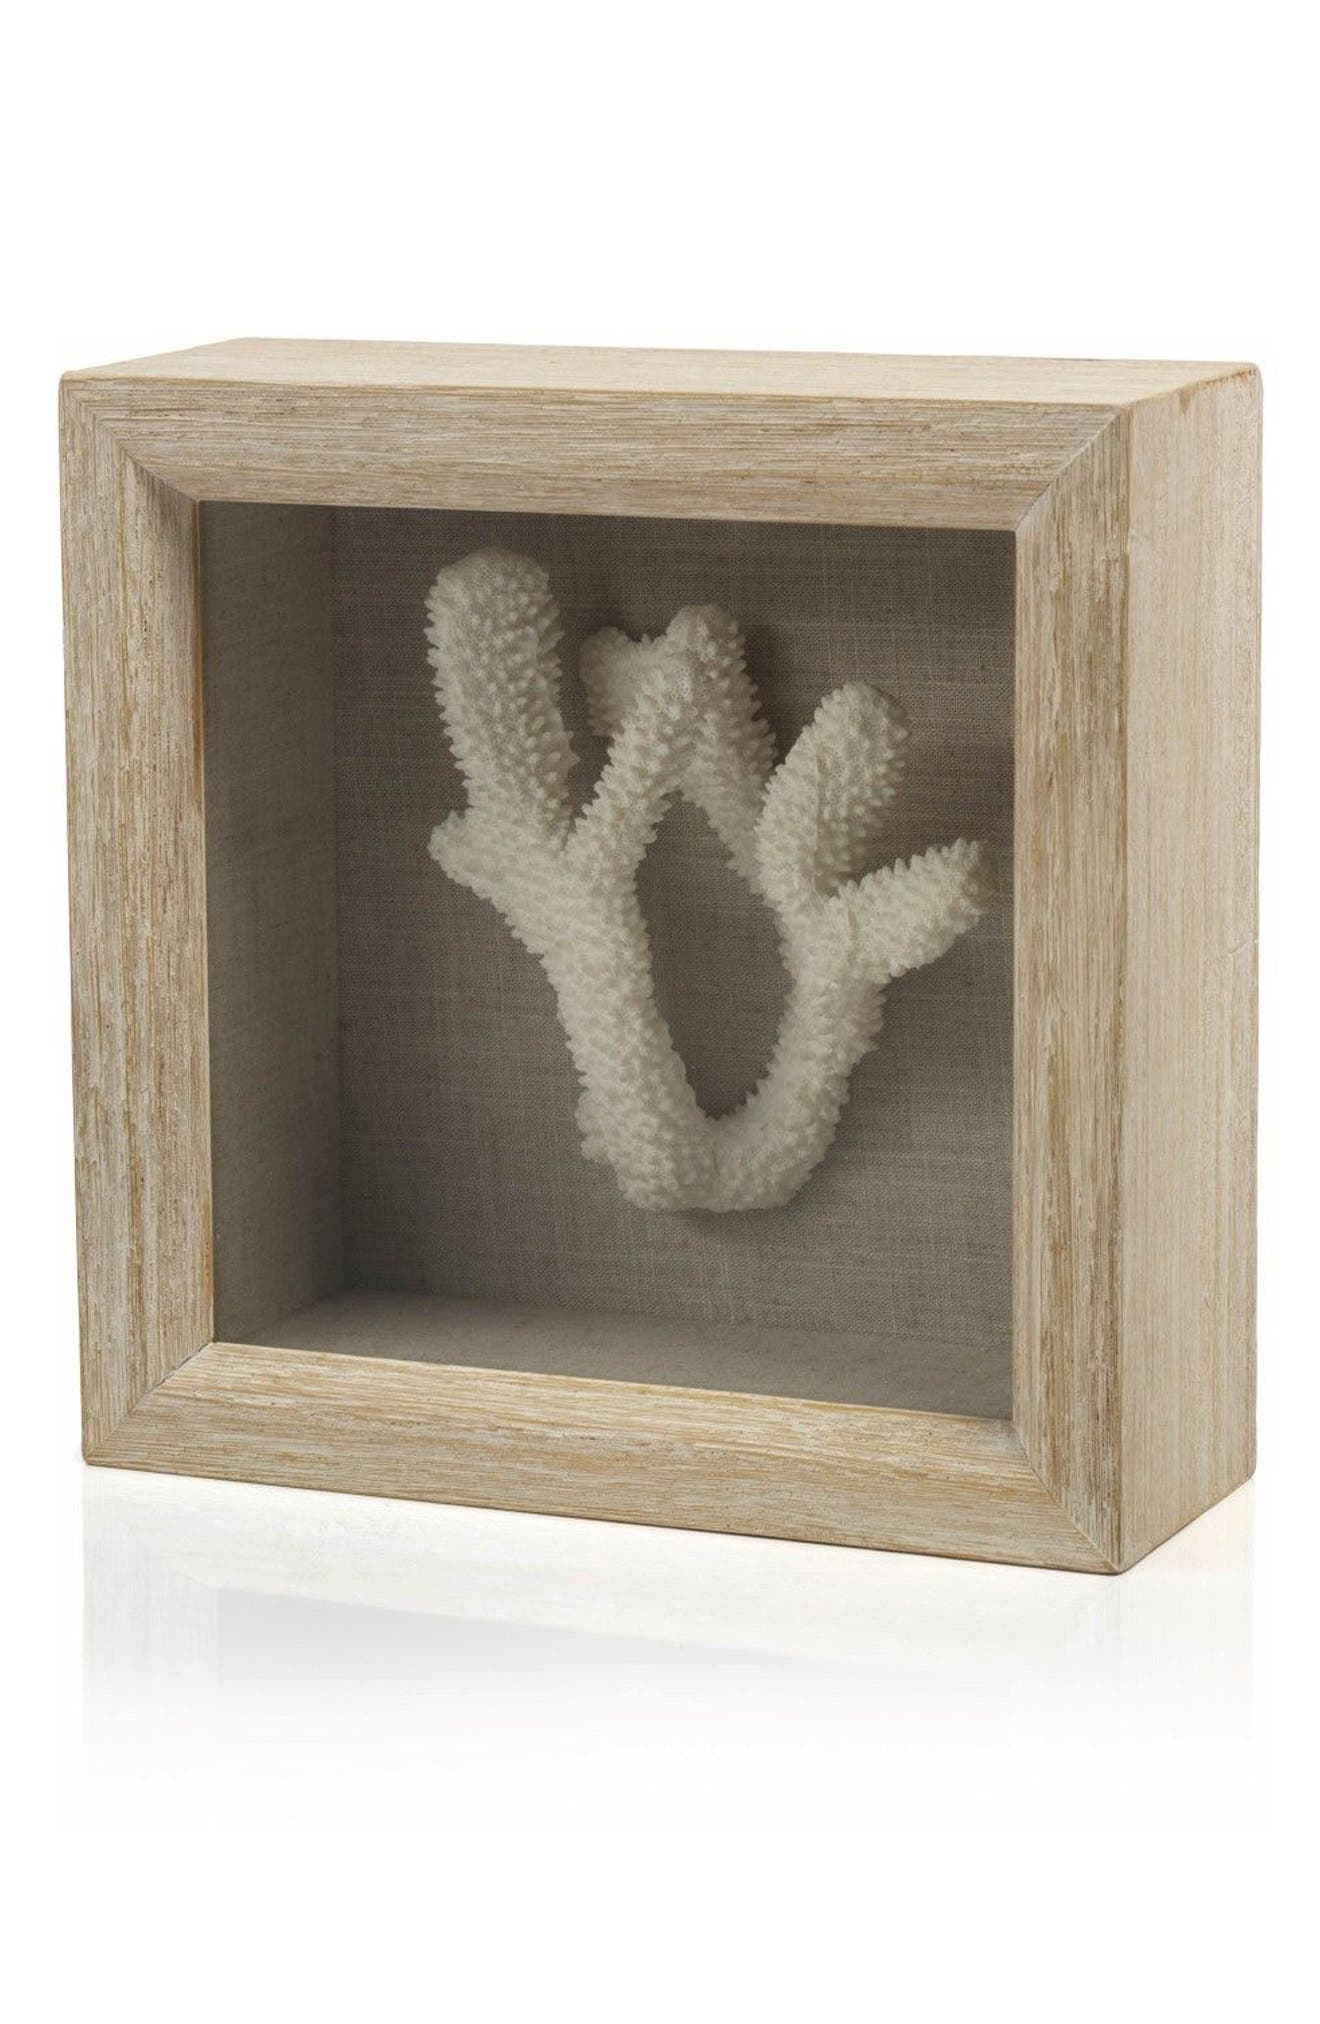 Staghorn Coral Shadow Box Art,                             Main thumbnail 1, color,                             Off-White/ Brown/ Beige